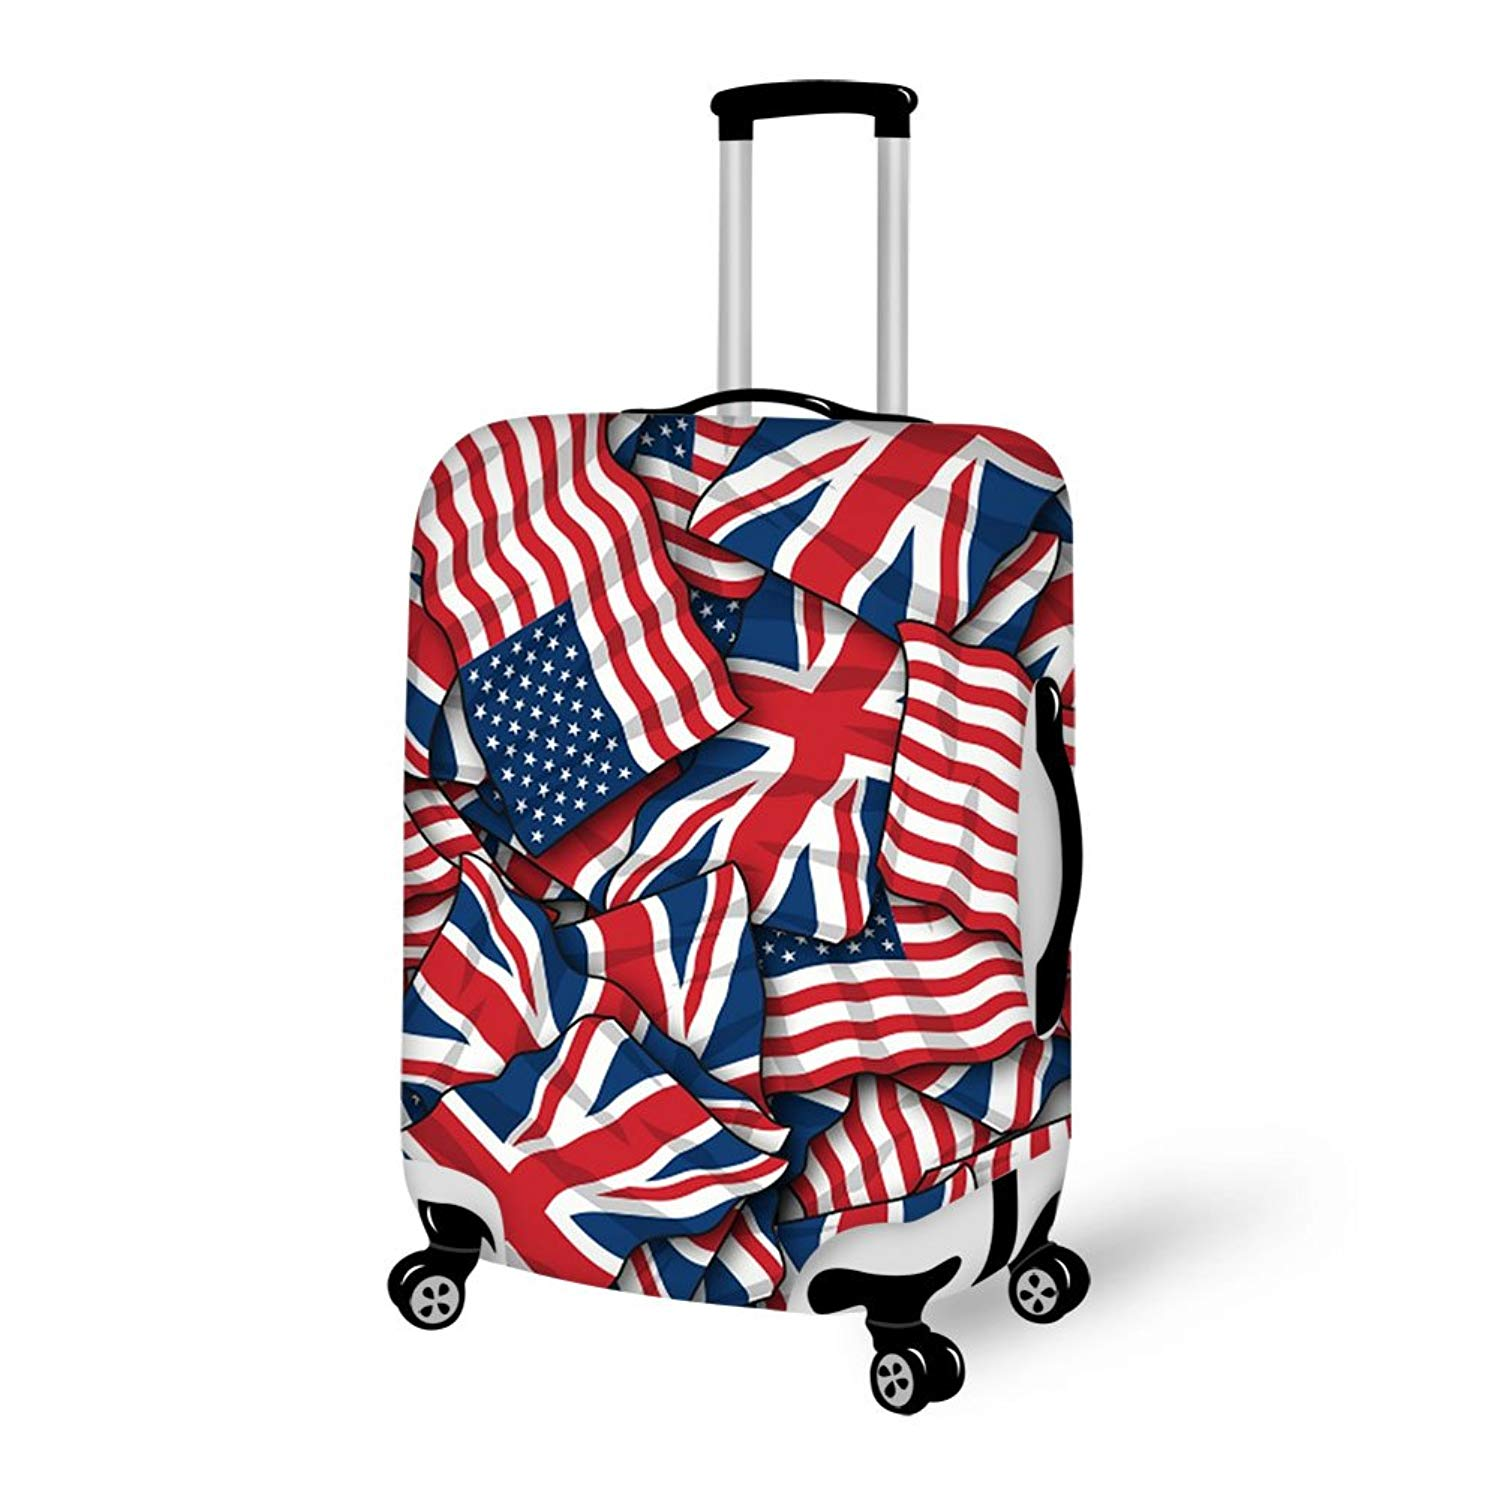 Luggage Protective Covers with UK British Flag Washable Travel Luggage Cover 18-32 Inch